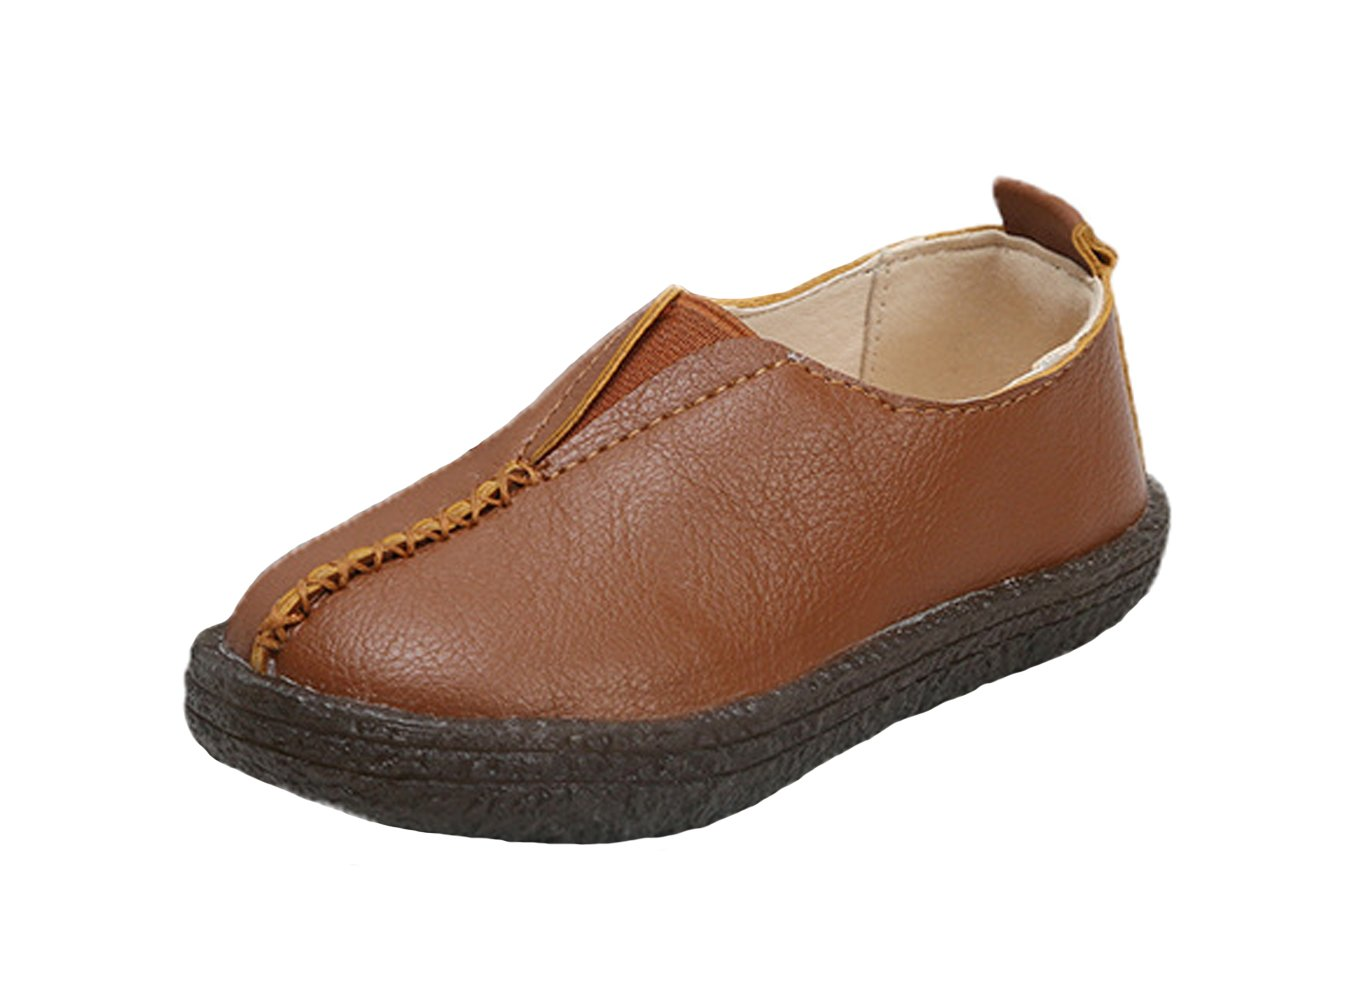 WUIWUIYU Boys' Girls' Slip-On Loafers Flats Oxfords Comfort Casual Walking Shoes Toddler Little Kid